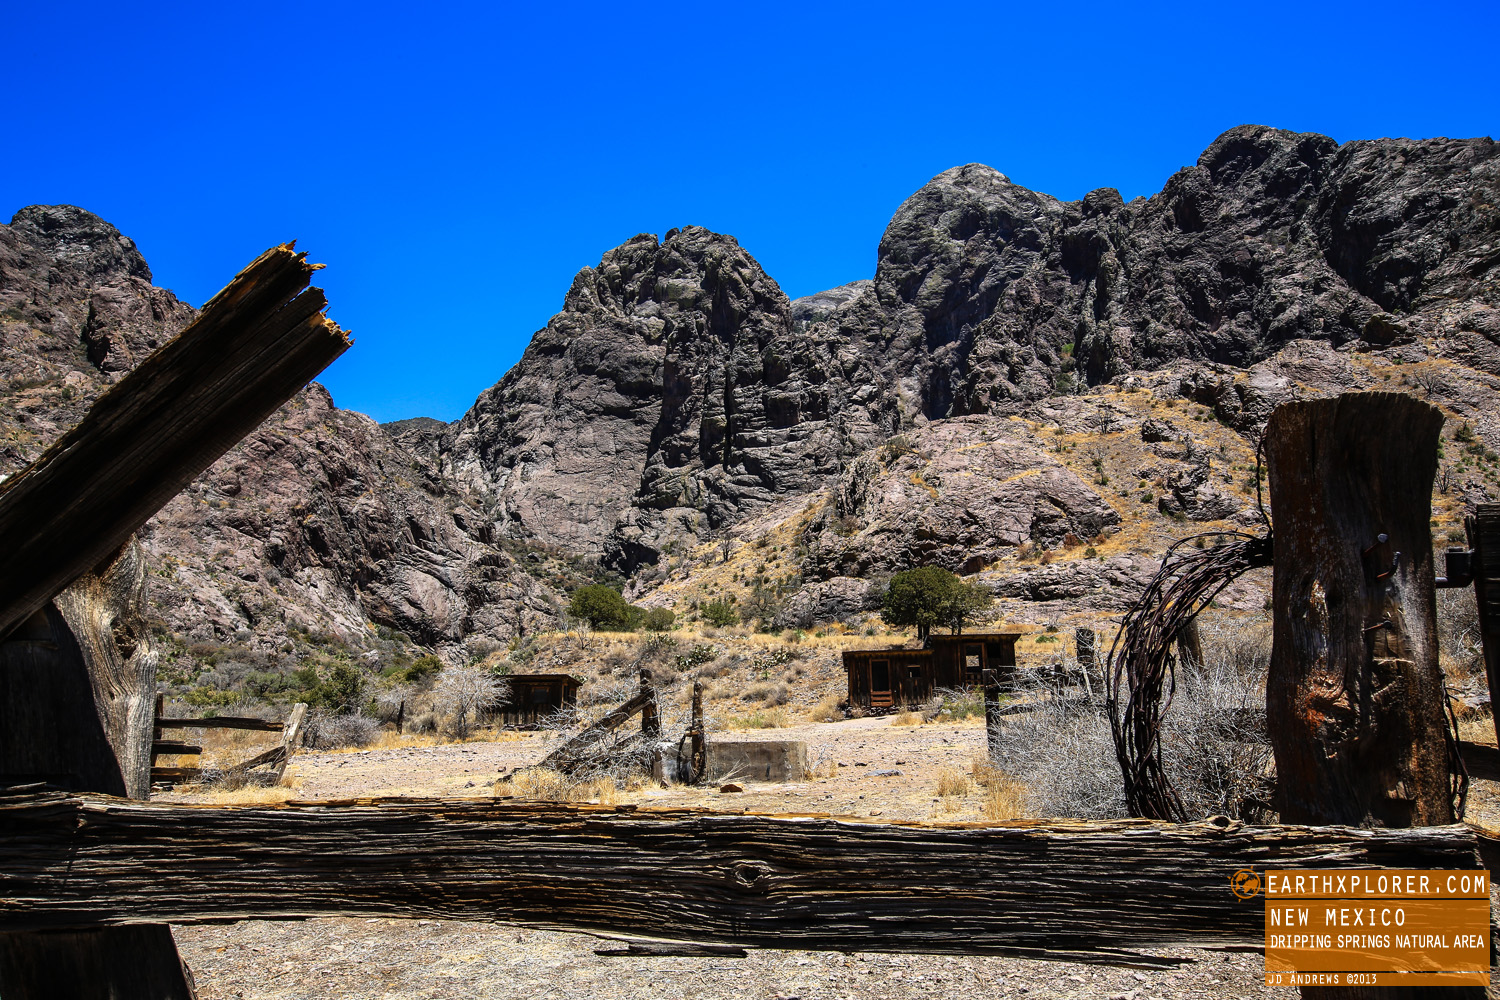 The Dripping Springs Natural Area is located 10 miles east of Las Cruces, New Mexico.